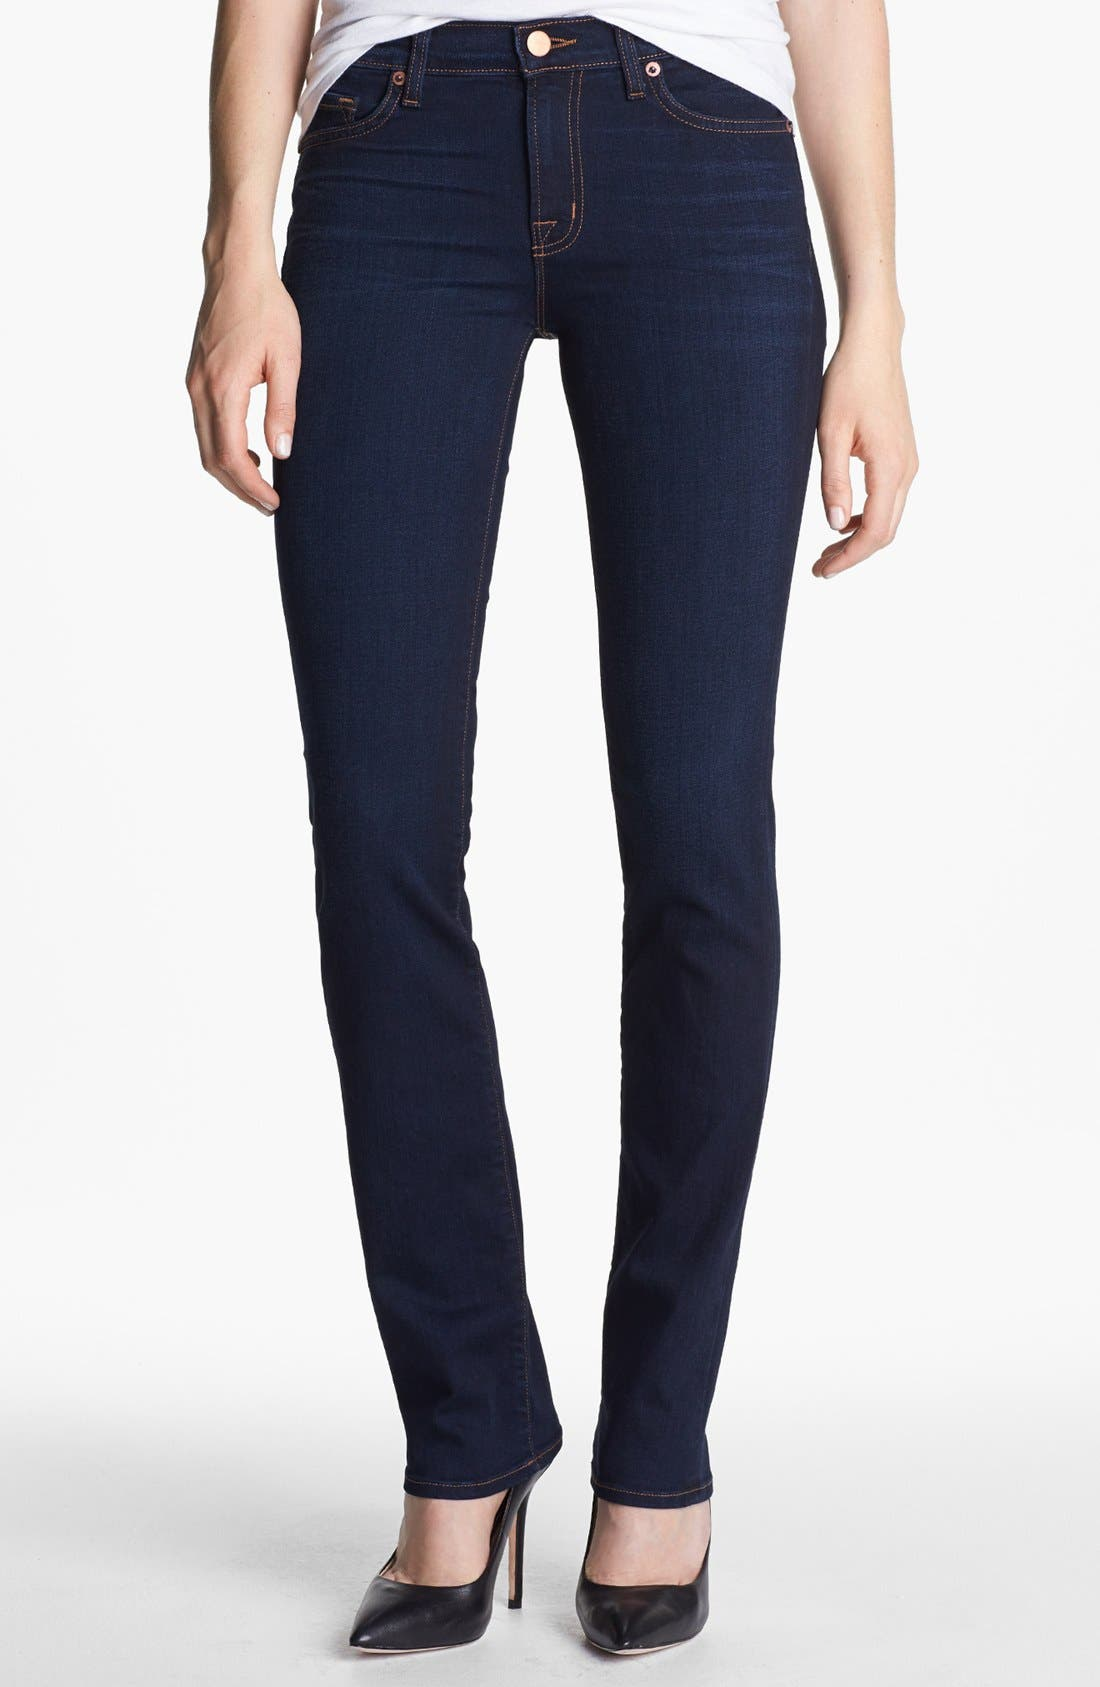 Alternate Image 1 Selected - J Brand '814' Mid-Rise Cigarette Leg Jeans (Ignite)